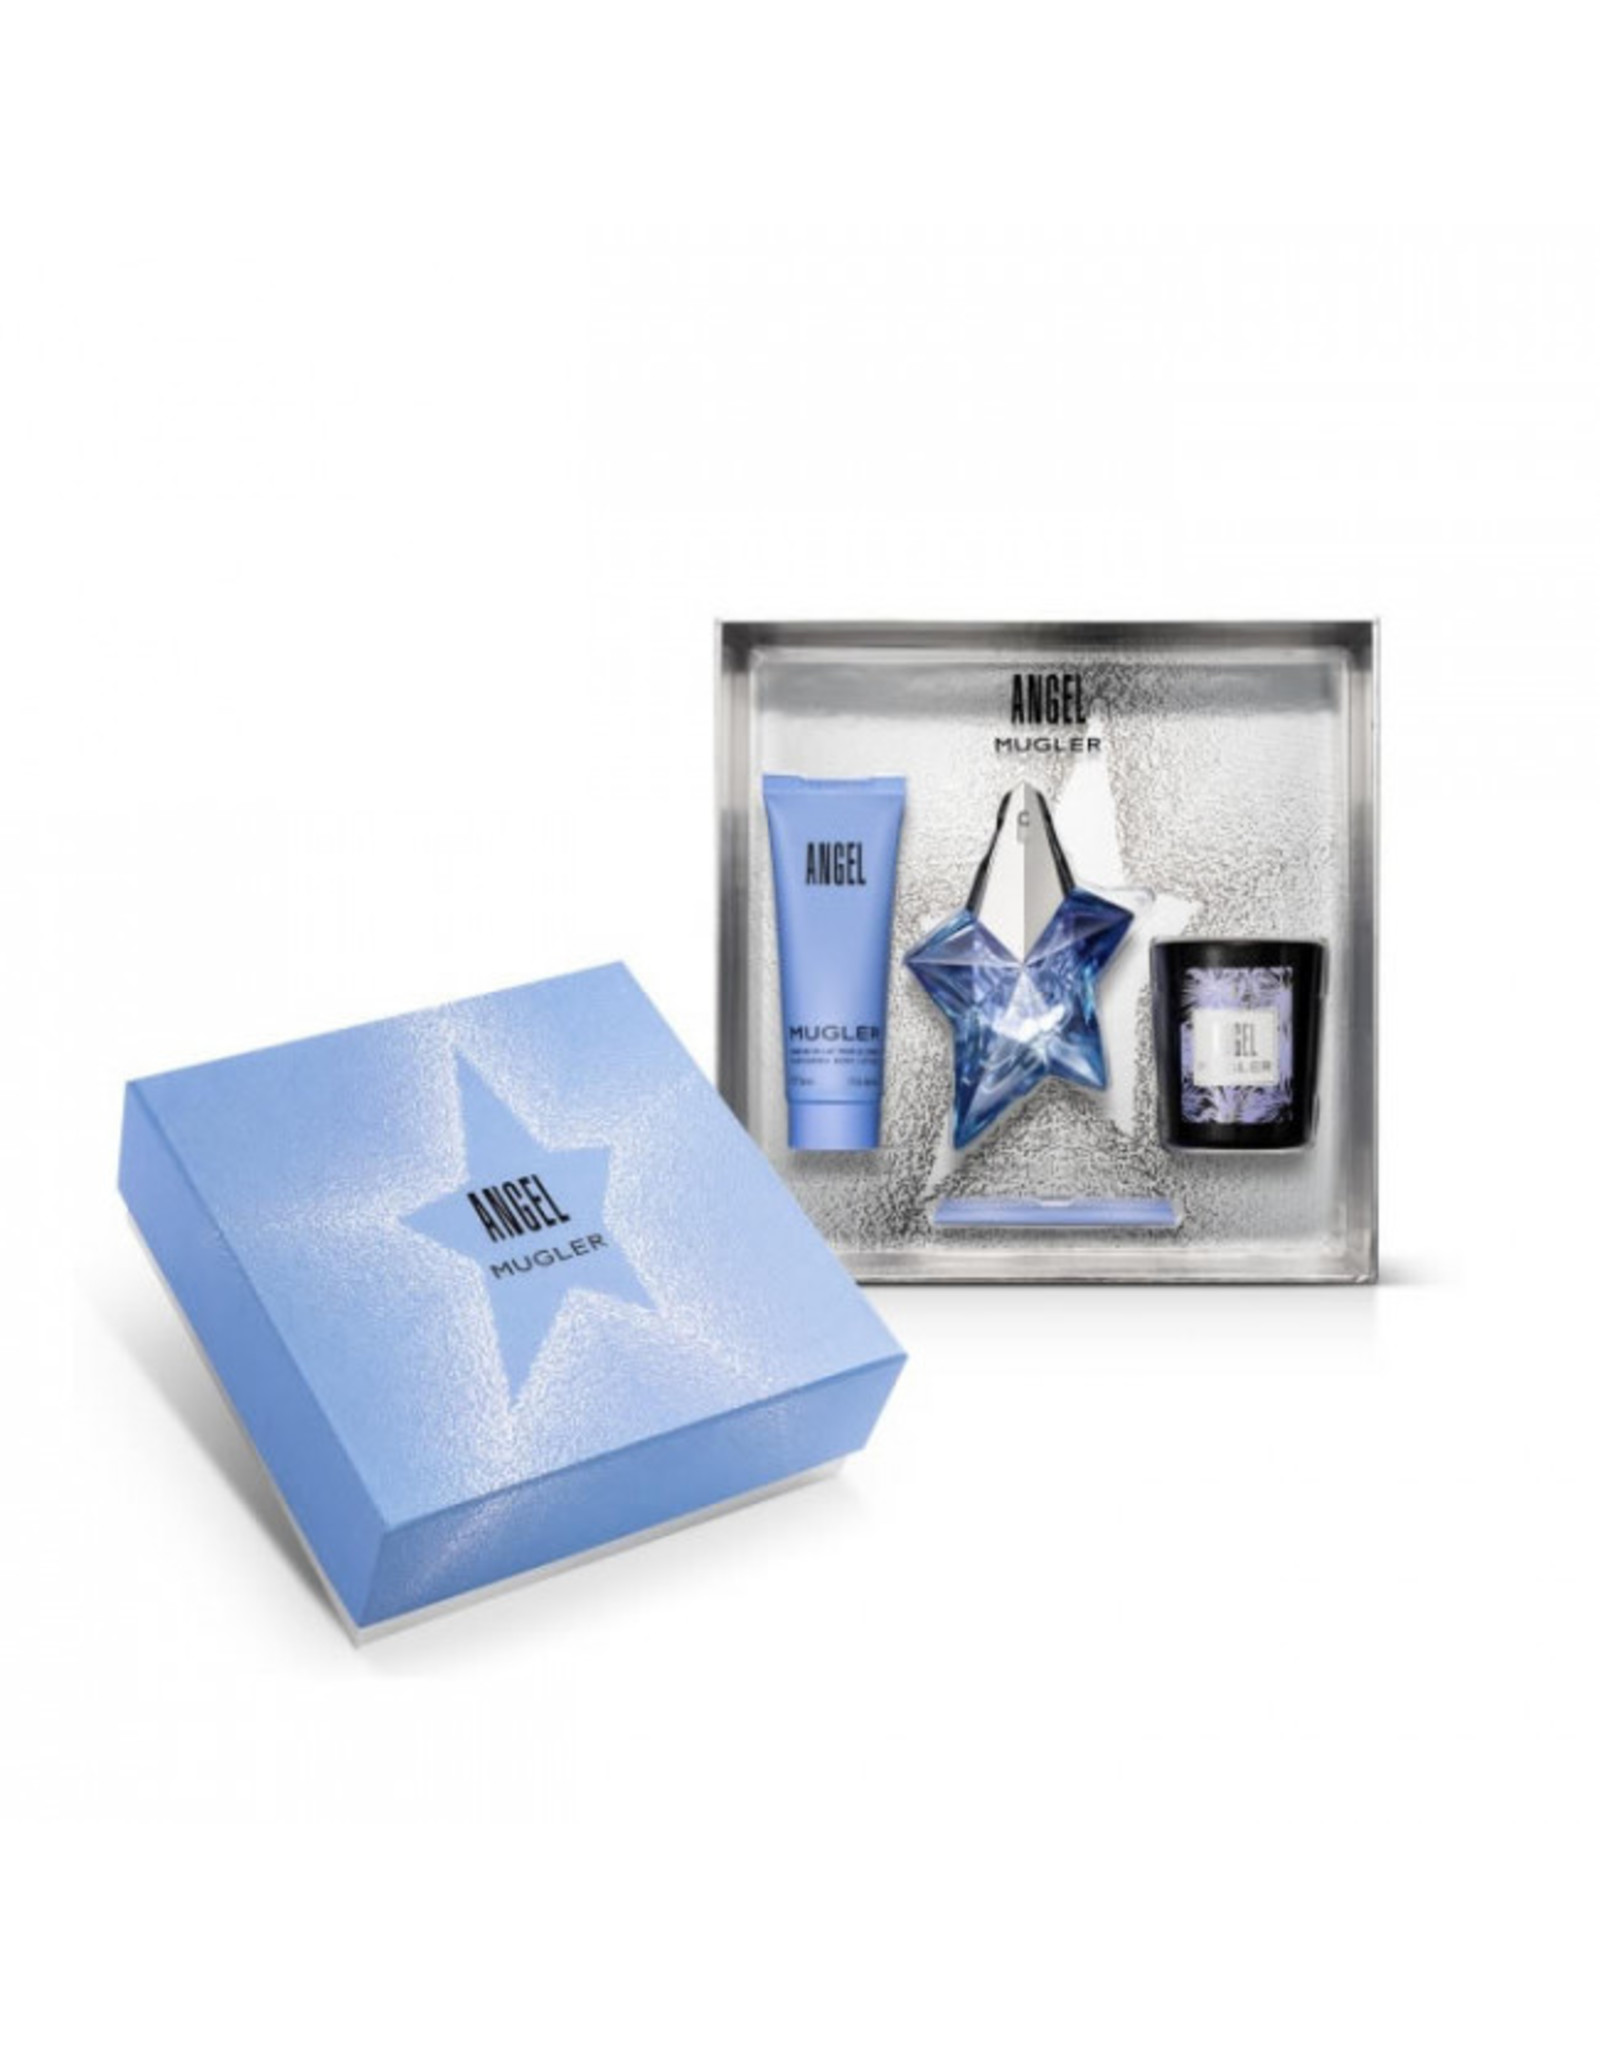 THIERRY MUGLER THIERRY MUGLER ANGEL 3pcs Set (Candle 70 gr.)